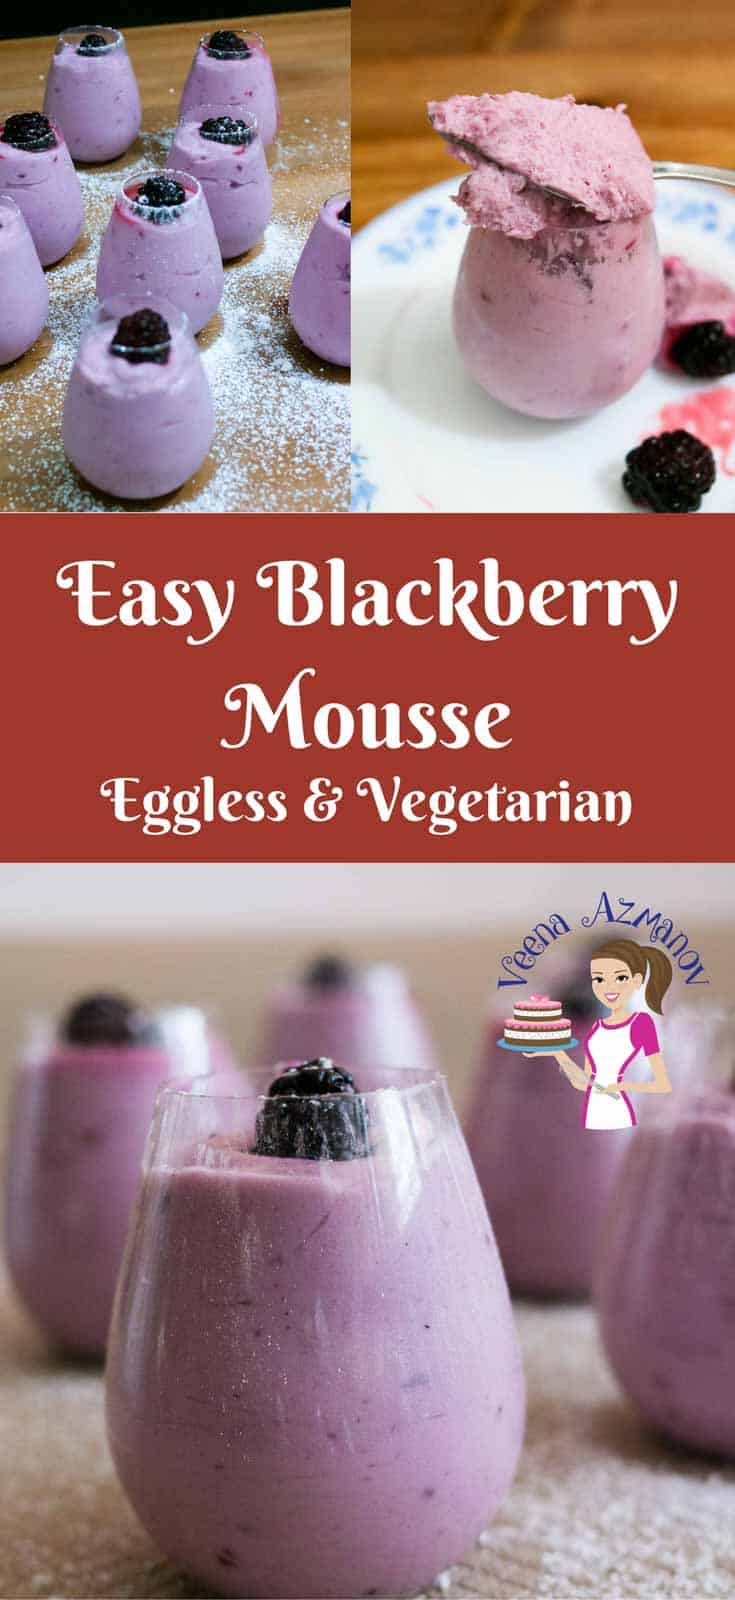 This easy blackberry mousse recipe is decadent as it is delicious. Simple, easy and quick to make in three easy steps. Using agar agar instead of gelatin means it sets quickly too.